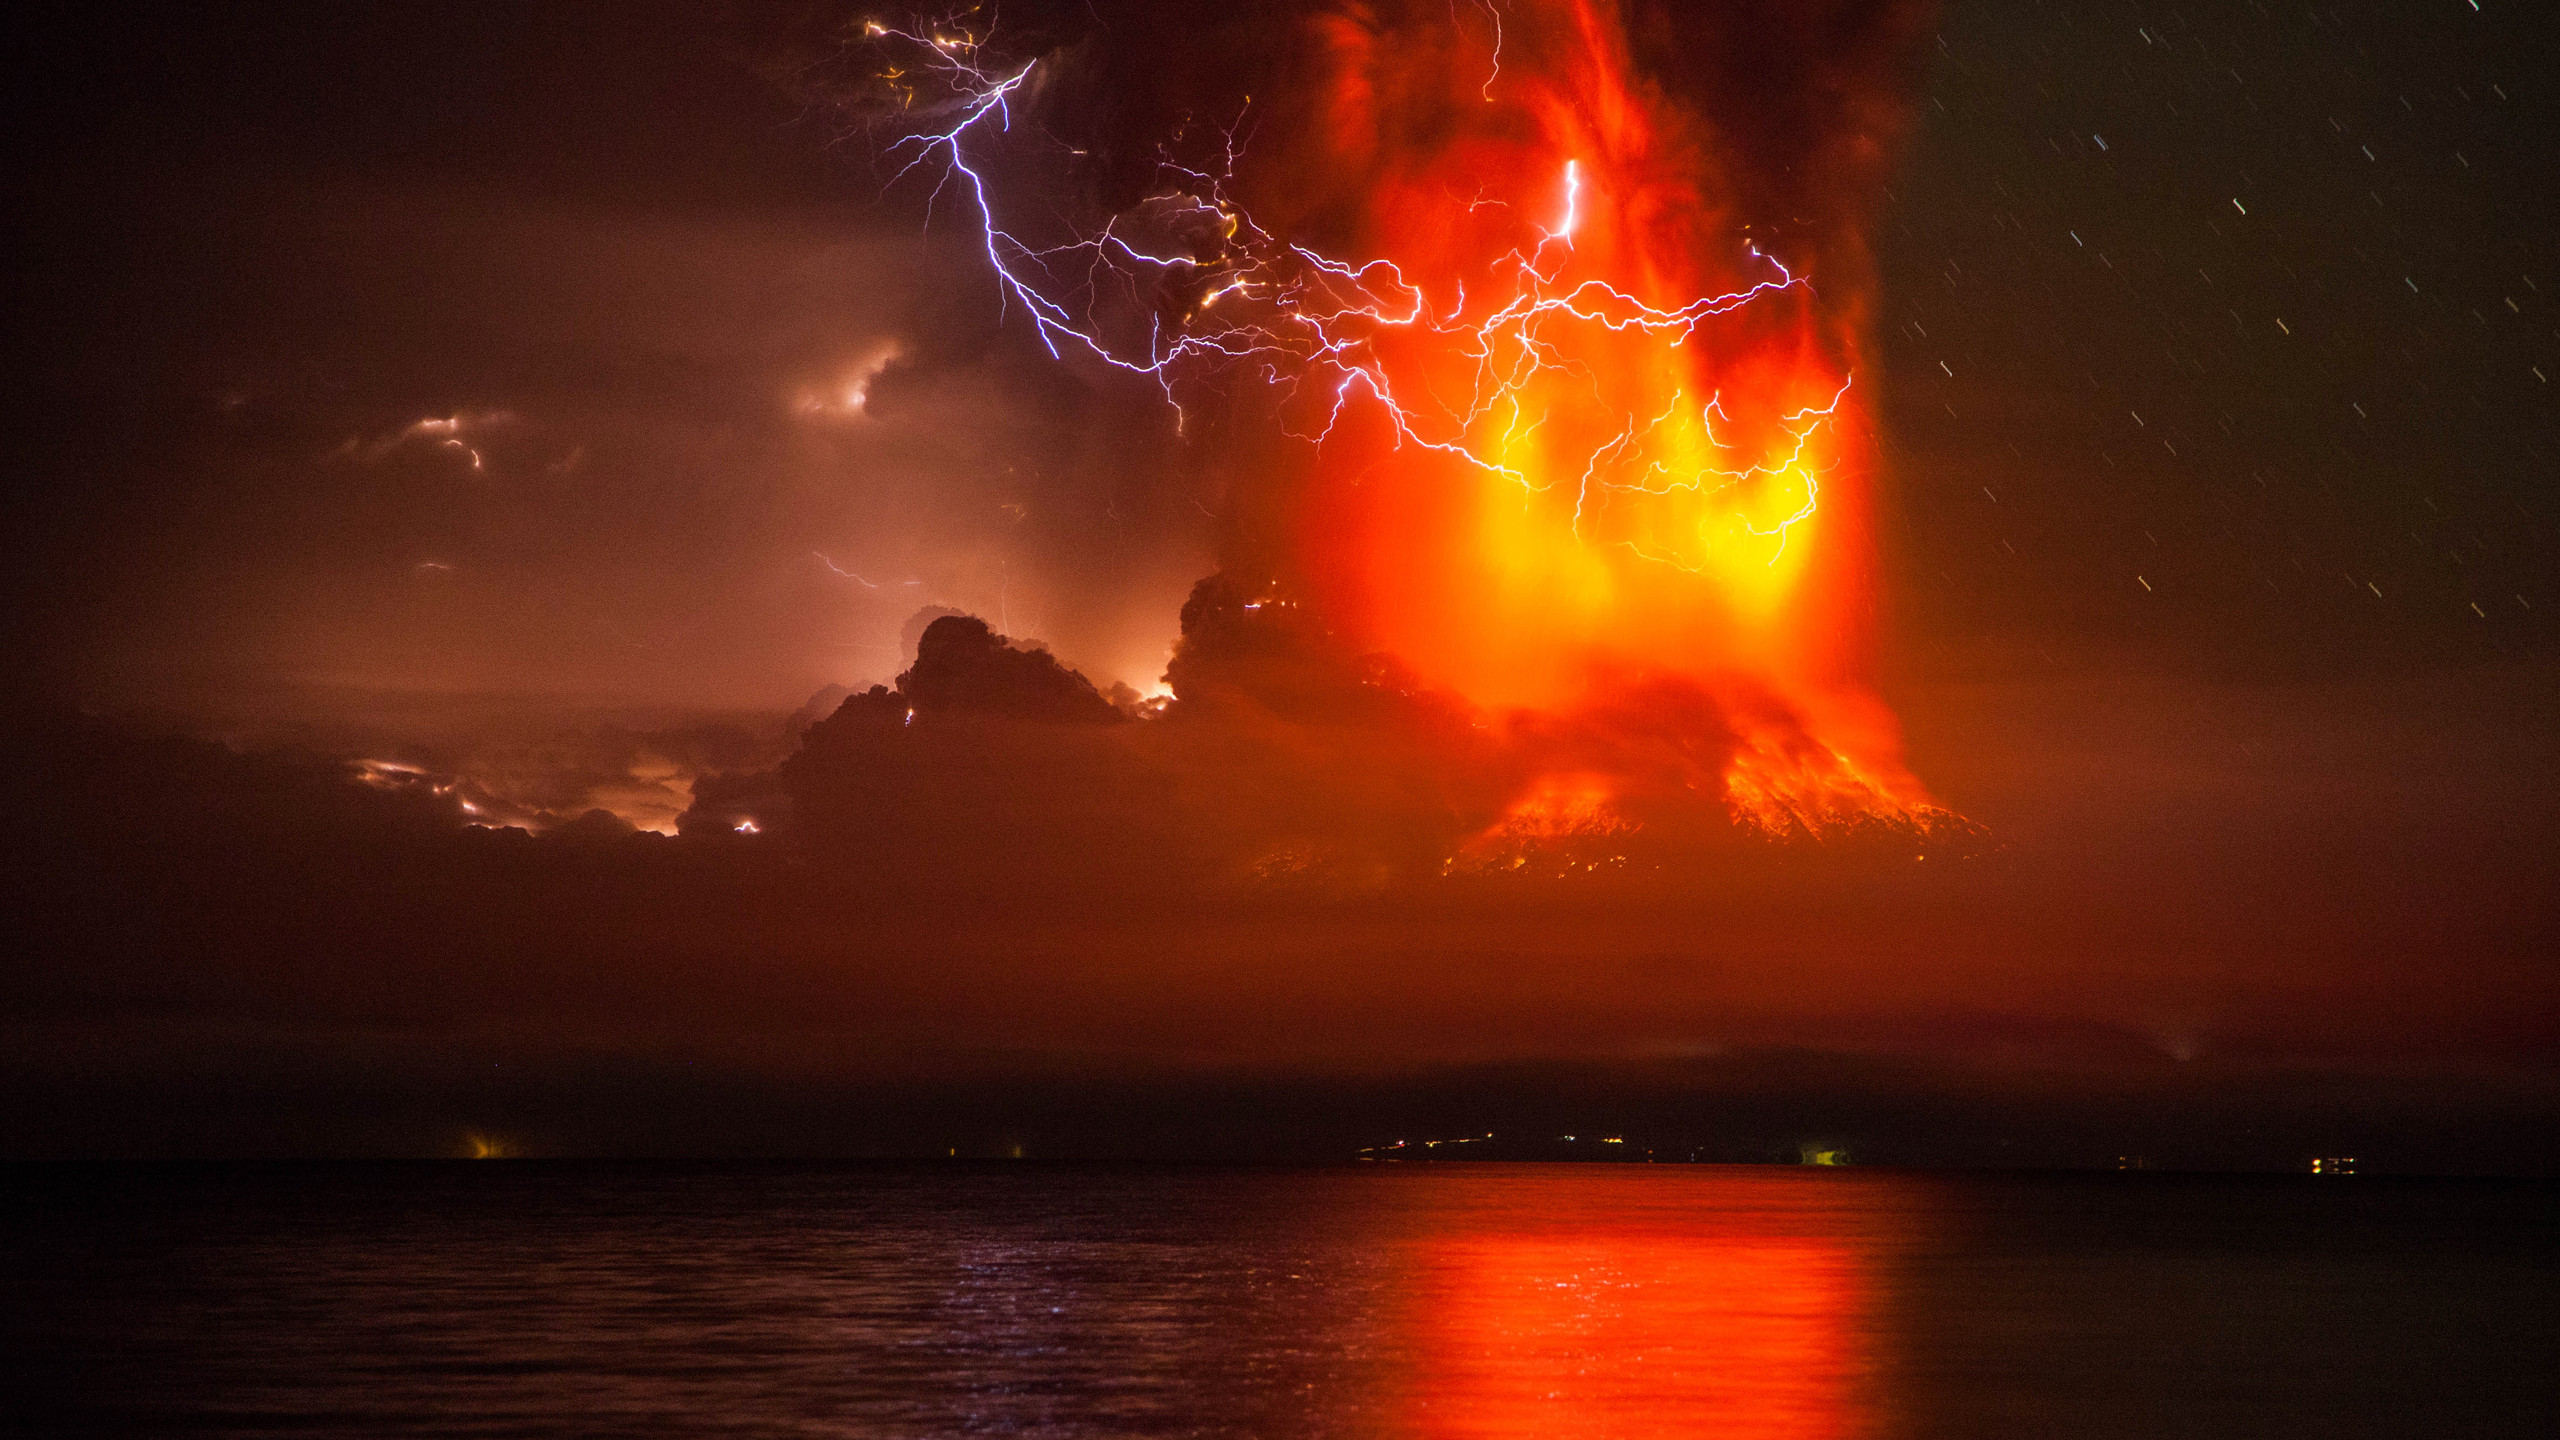 Res: 2560x1440, Download  villarrica, volcano, eruption, lightning, sea, chile,  nature Wallpapers